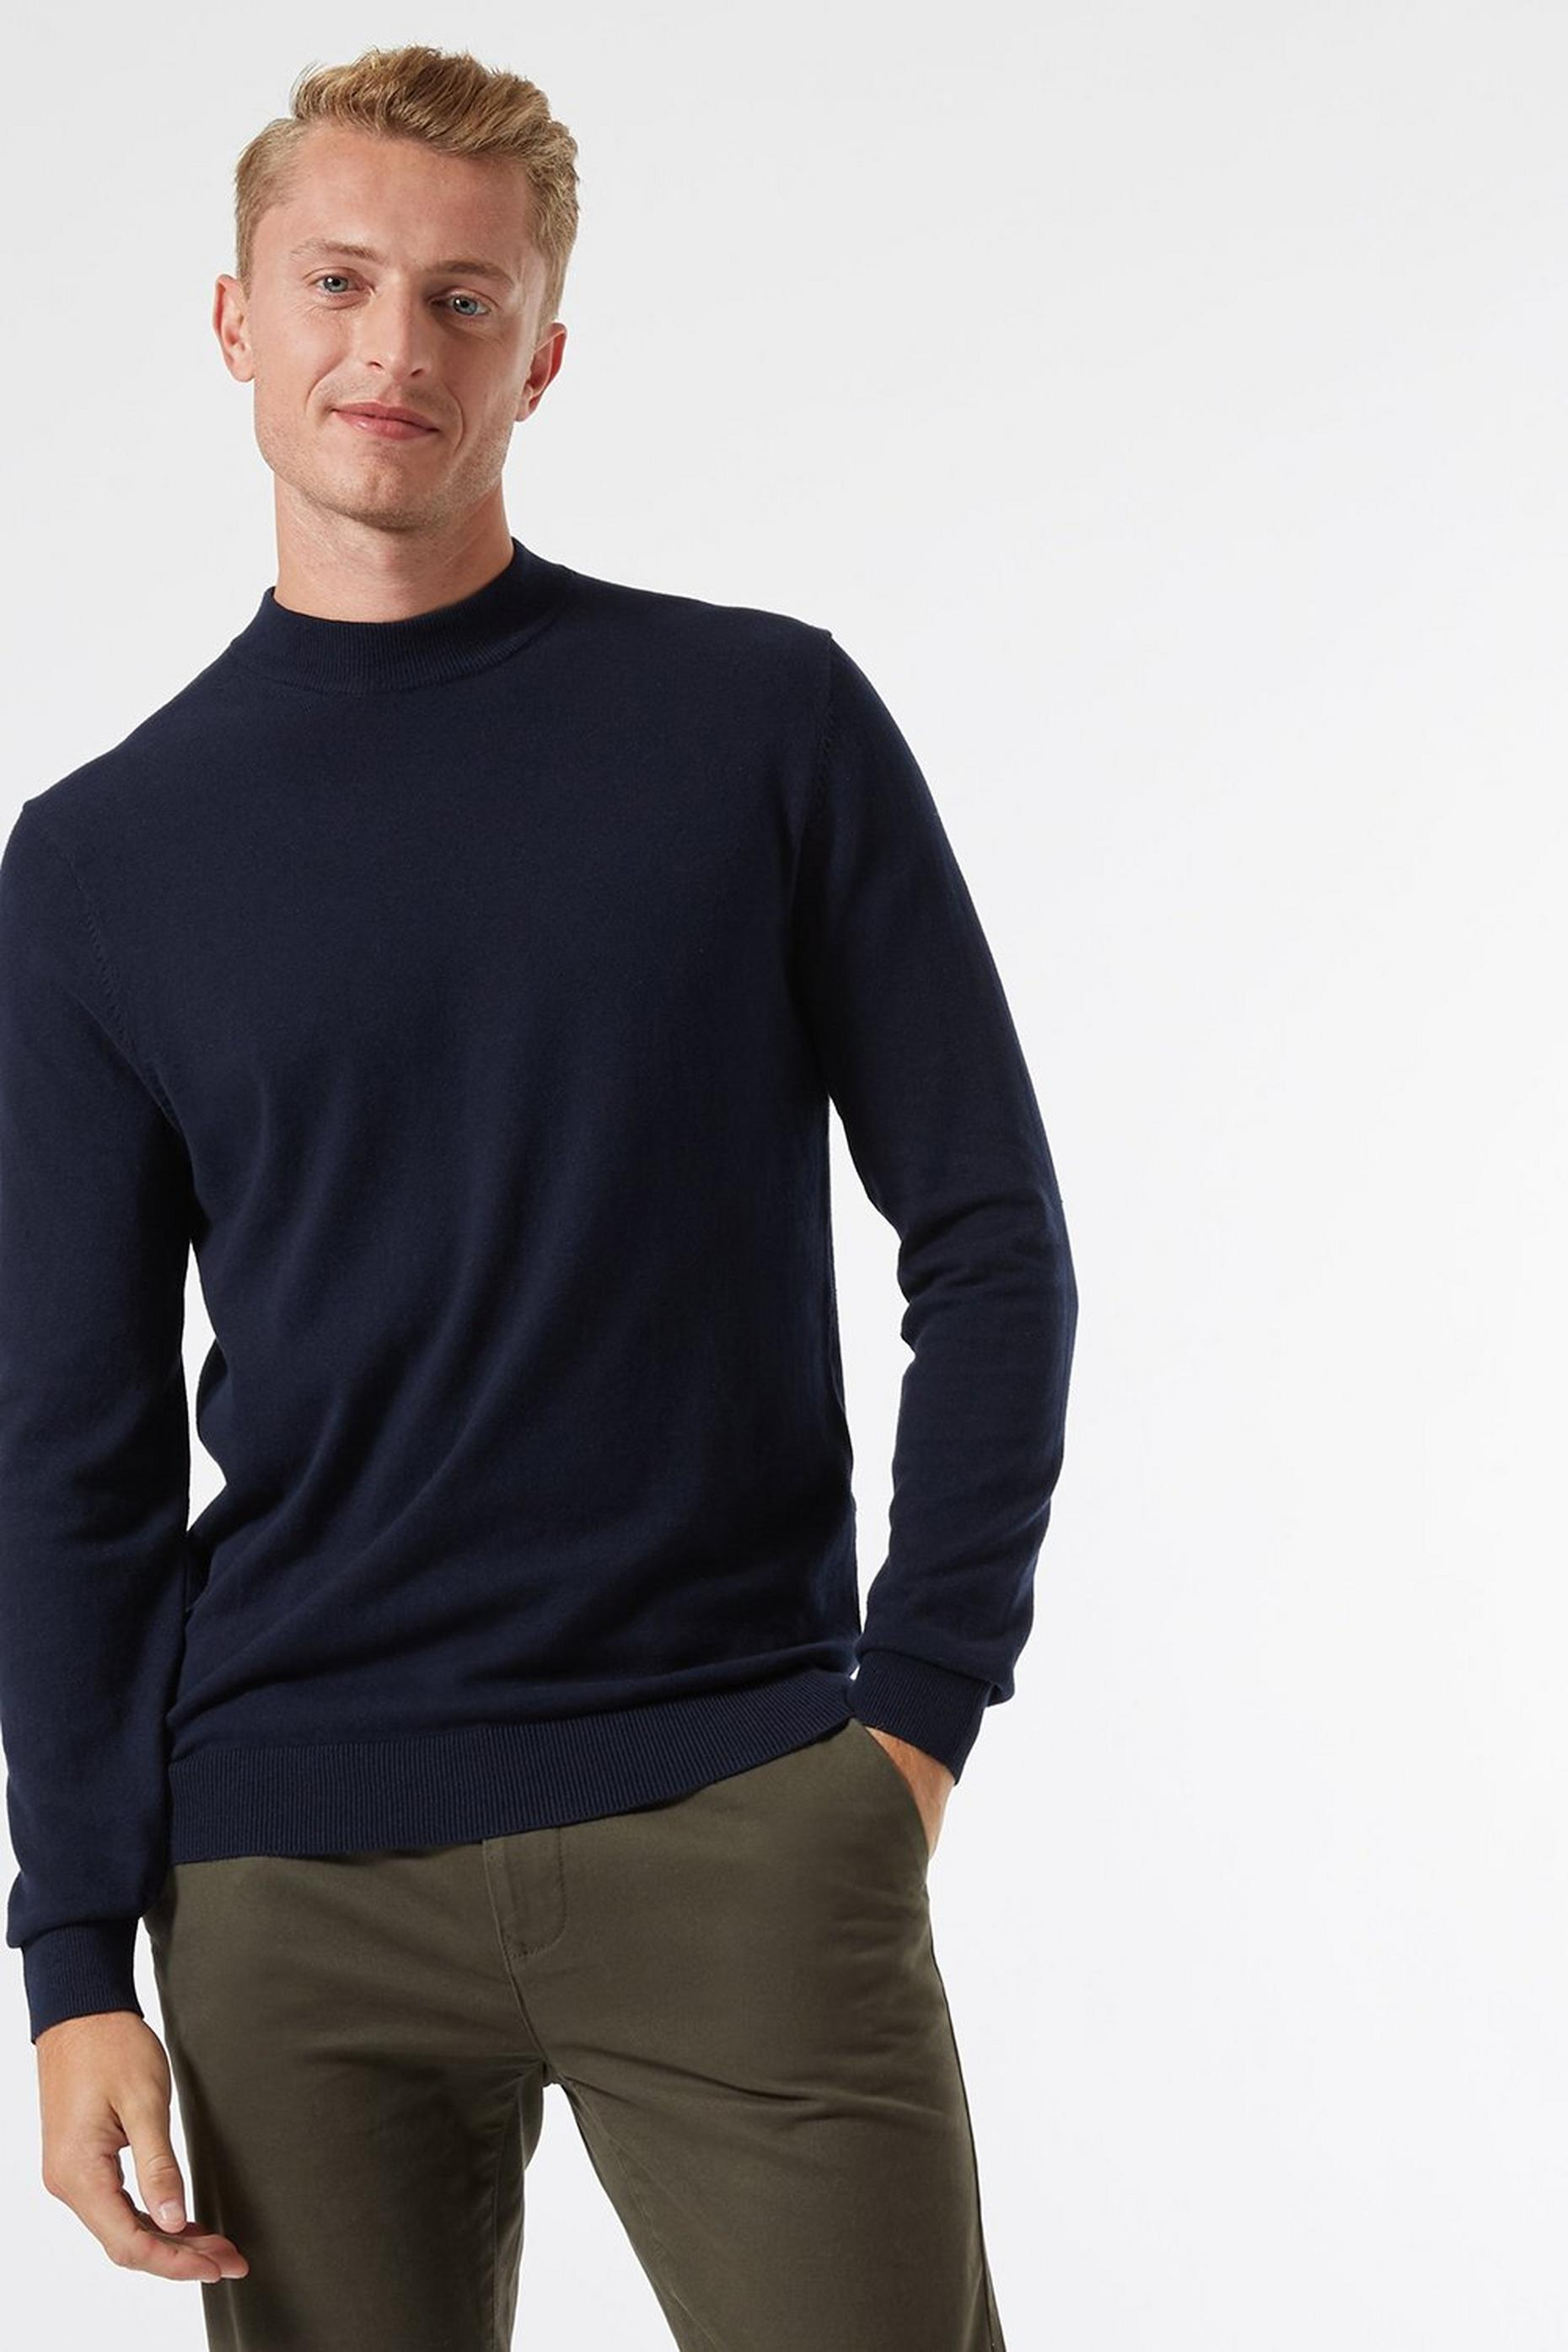 Navy Turtle Neck Jumper with Organic Cotton